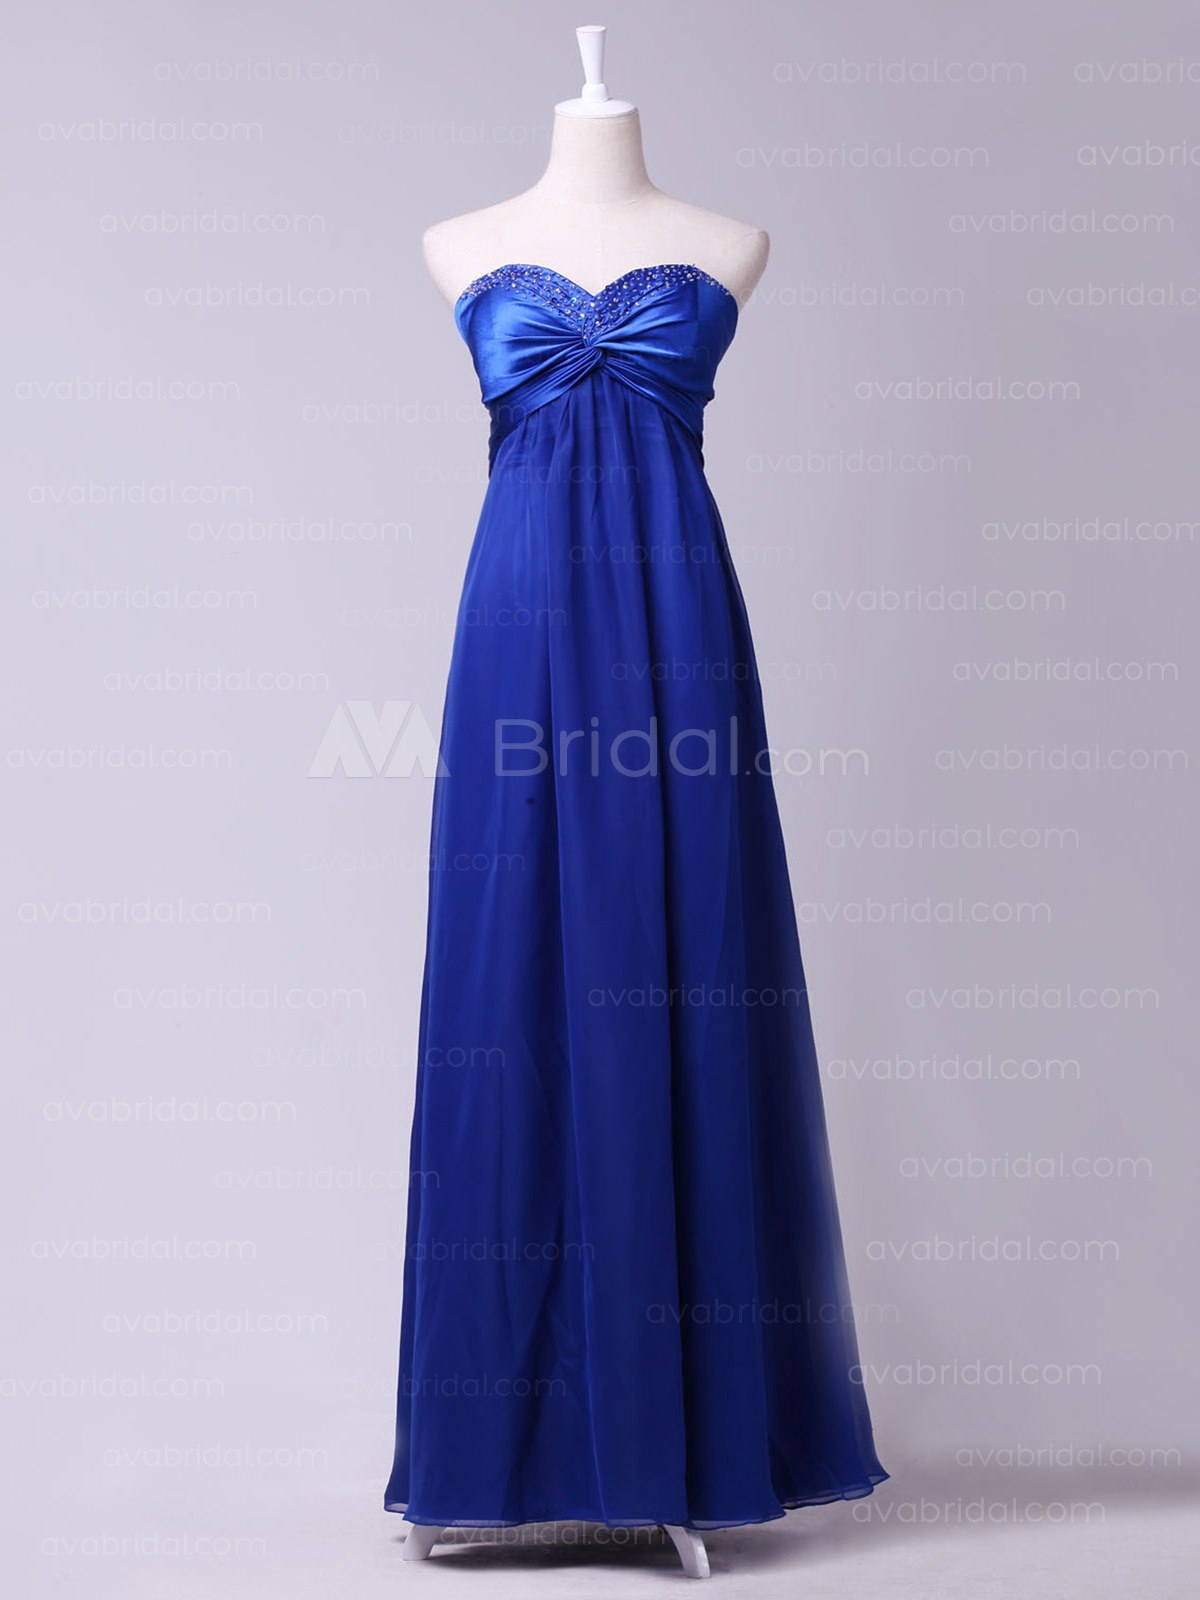 Modern Slim Line Chiffon Bridesmaid Dress B450-Front